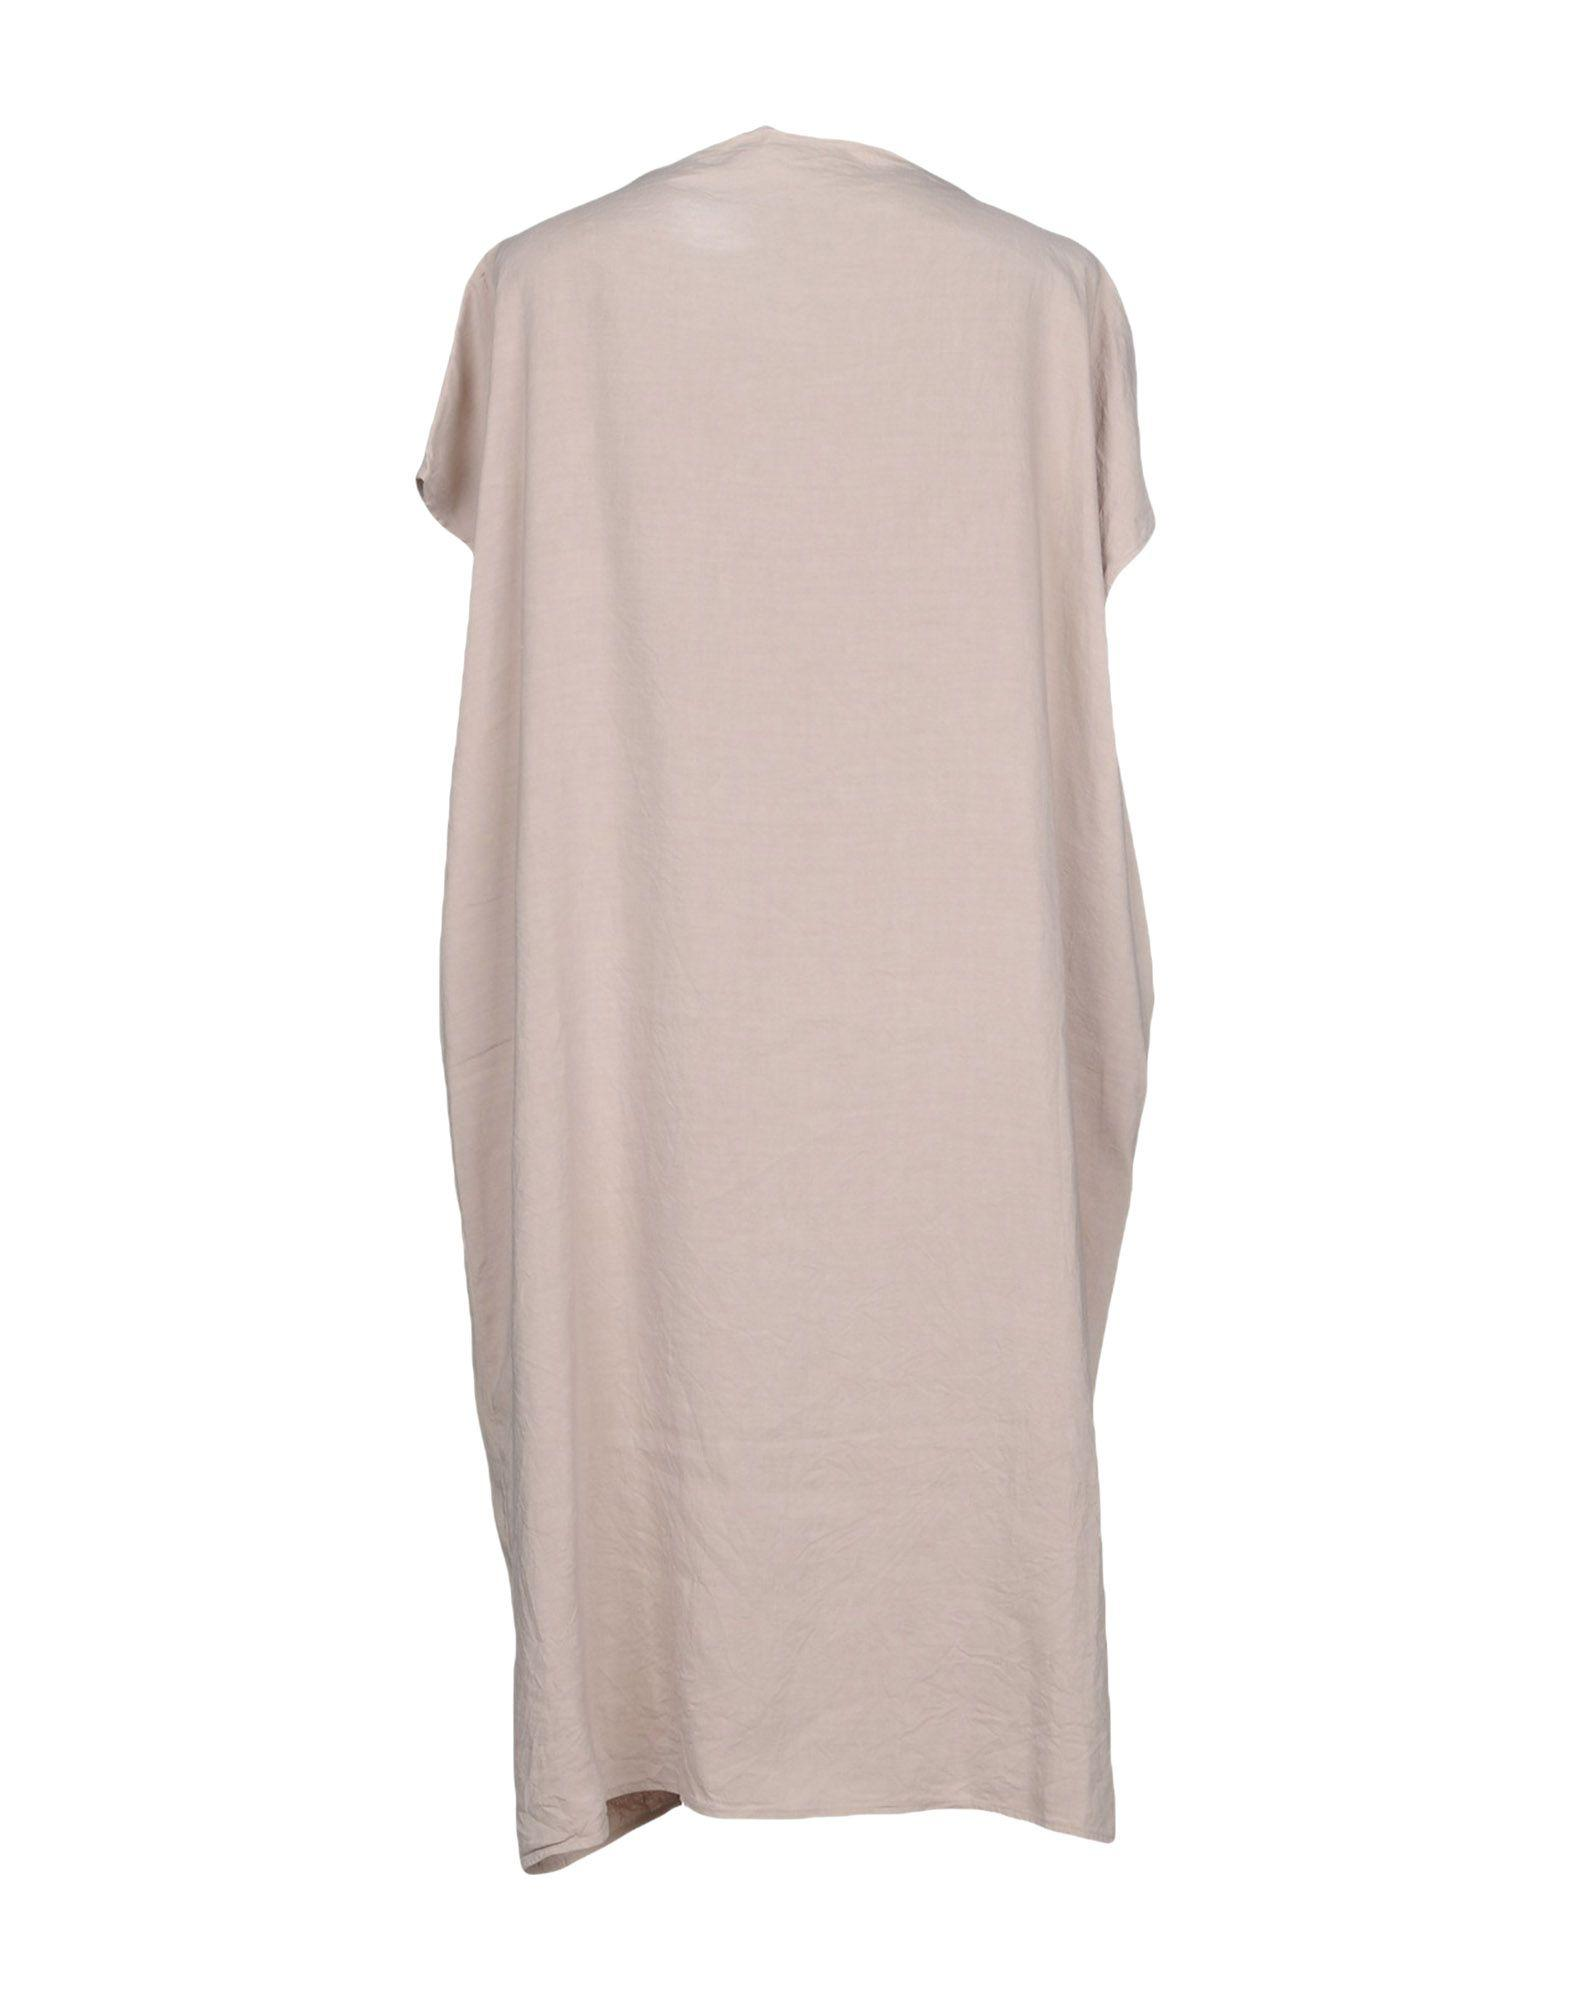 DRESSES - Knee-length dresses Golden Goose AL4dp8a0b